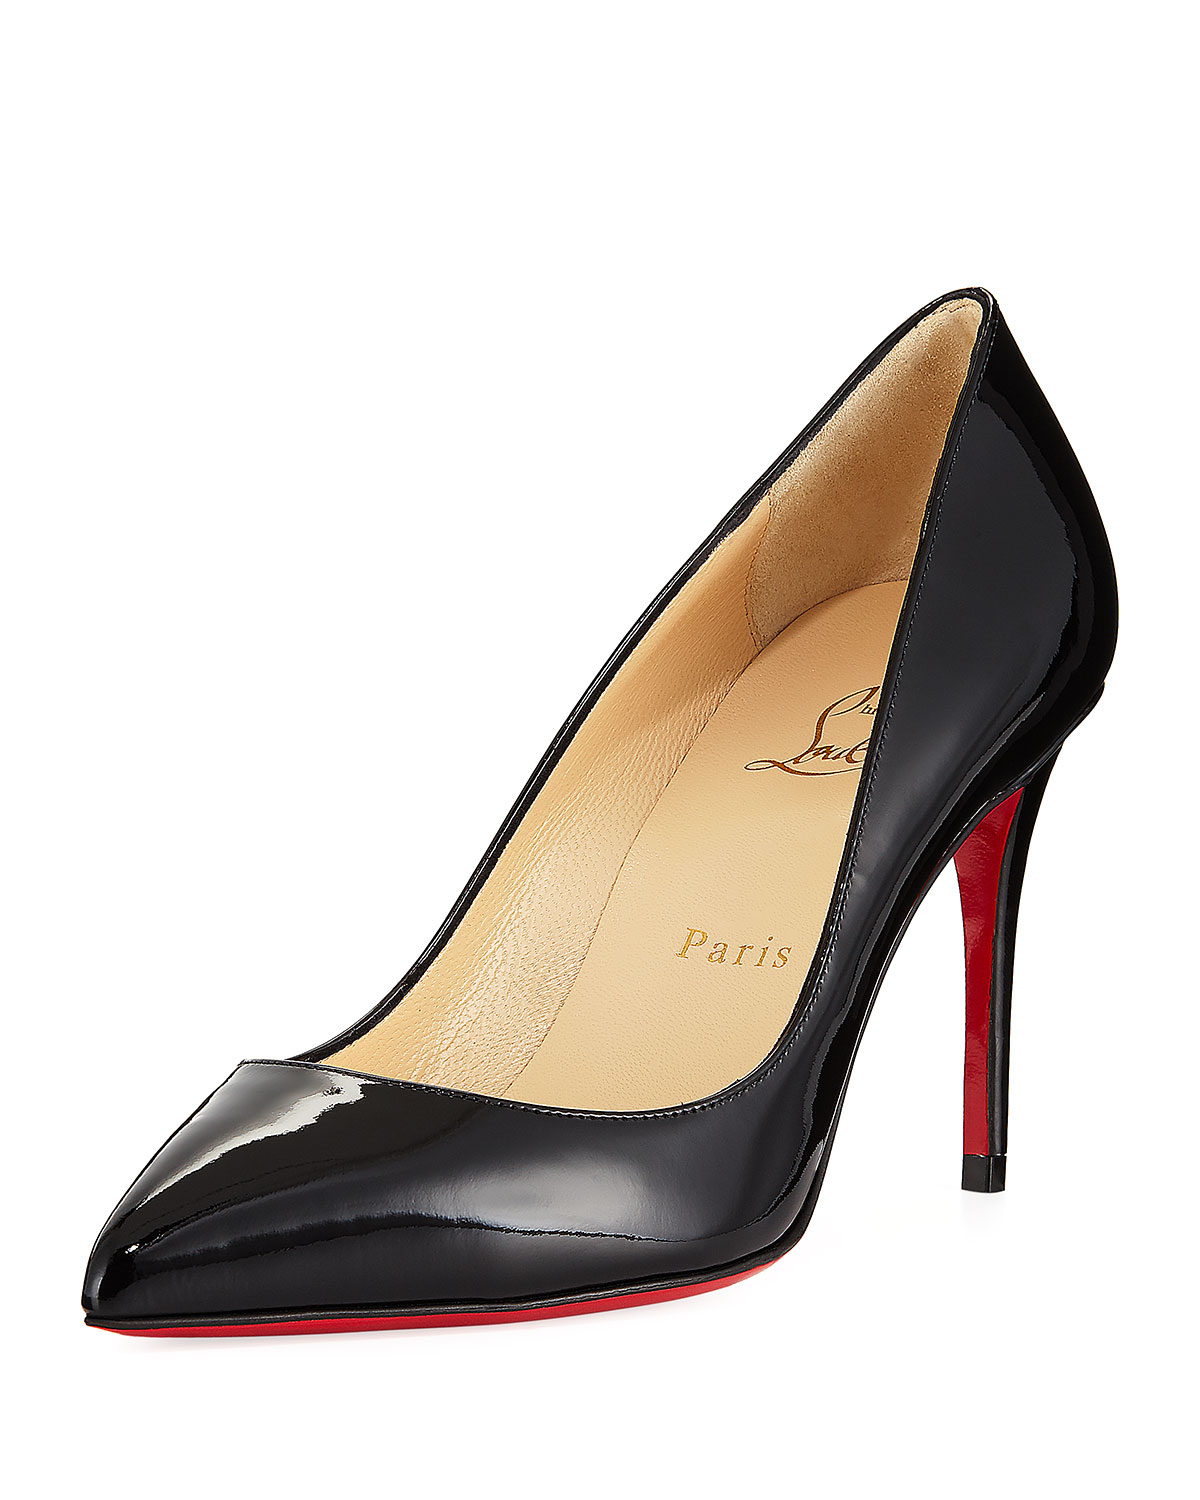 huge discount 24fbe 530ab Pigalle Follies 85mm Patent Red Sole Pump